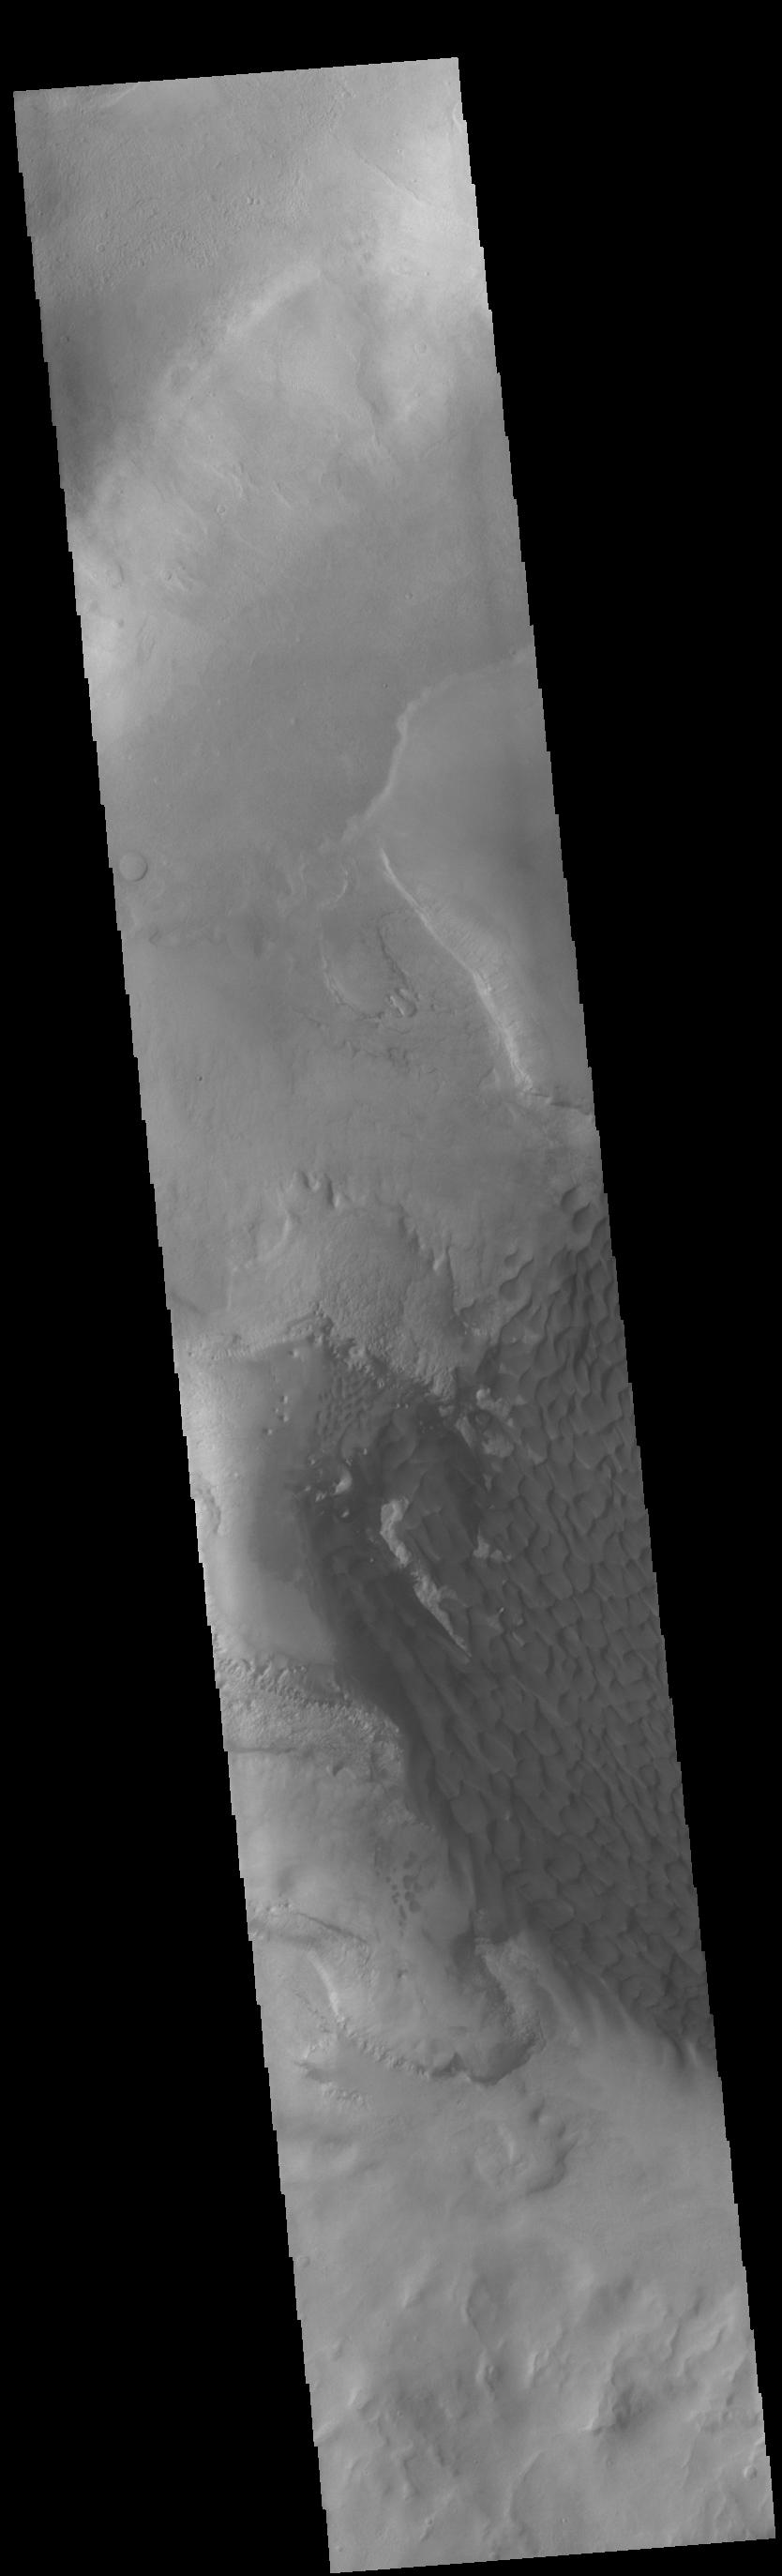 This image from NASAs Mars Odyssey shows part of the dune field on the floor and within the pits of Rabe Crater.